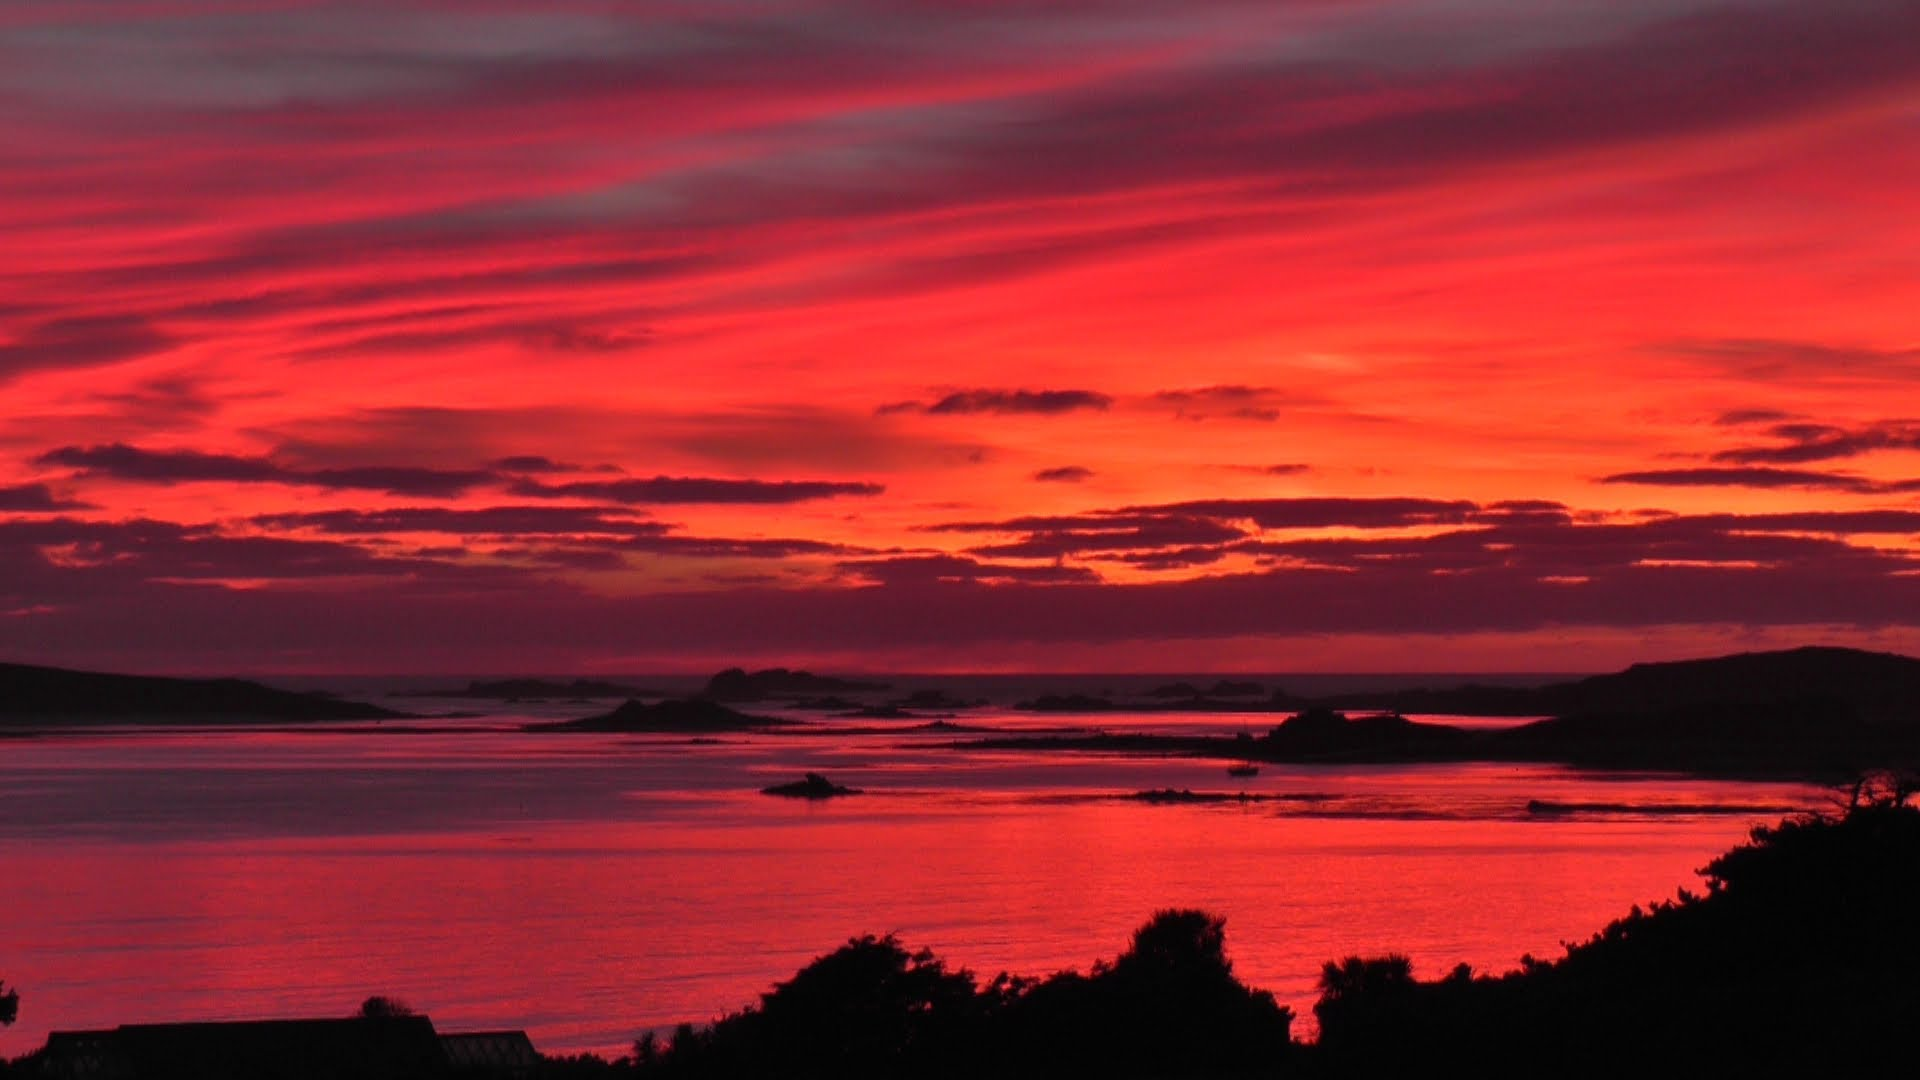 The Most Beautiful Sunset and Red Sky in The World Ever - Isles of ...